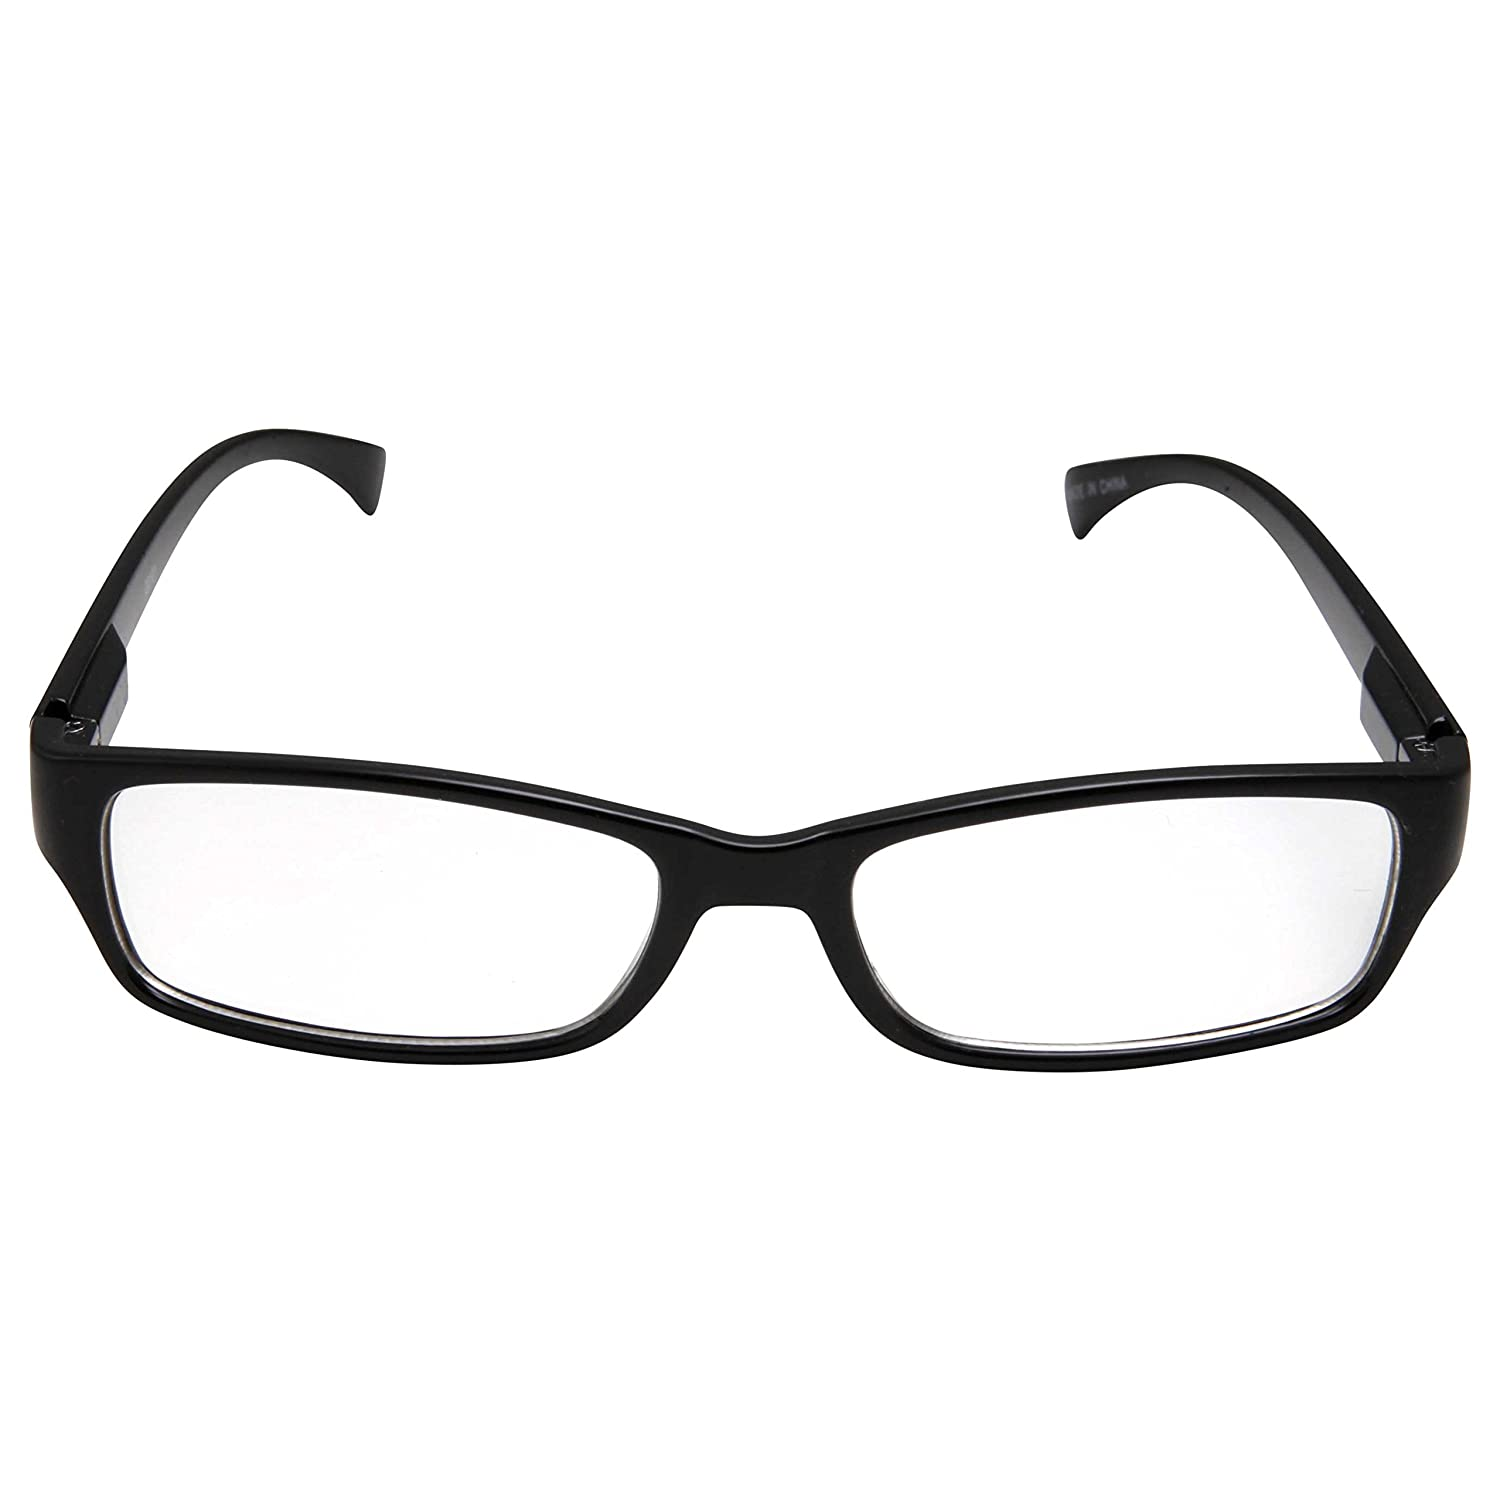 Age 6-12 grinderPUNCH 20101-GPK Kids Smart Looks Eye Glasses Rectangle Nerd Childrens Clear Lens